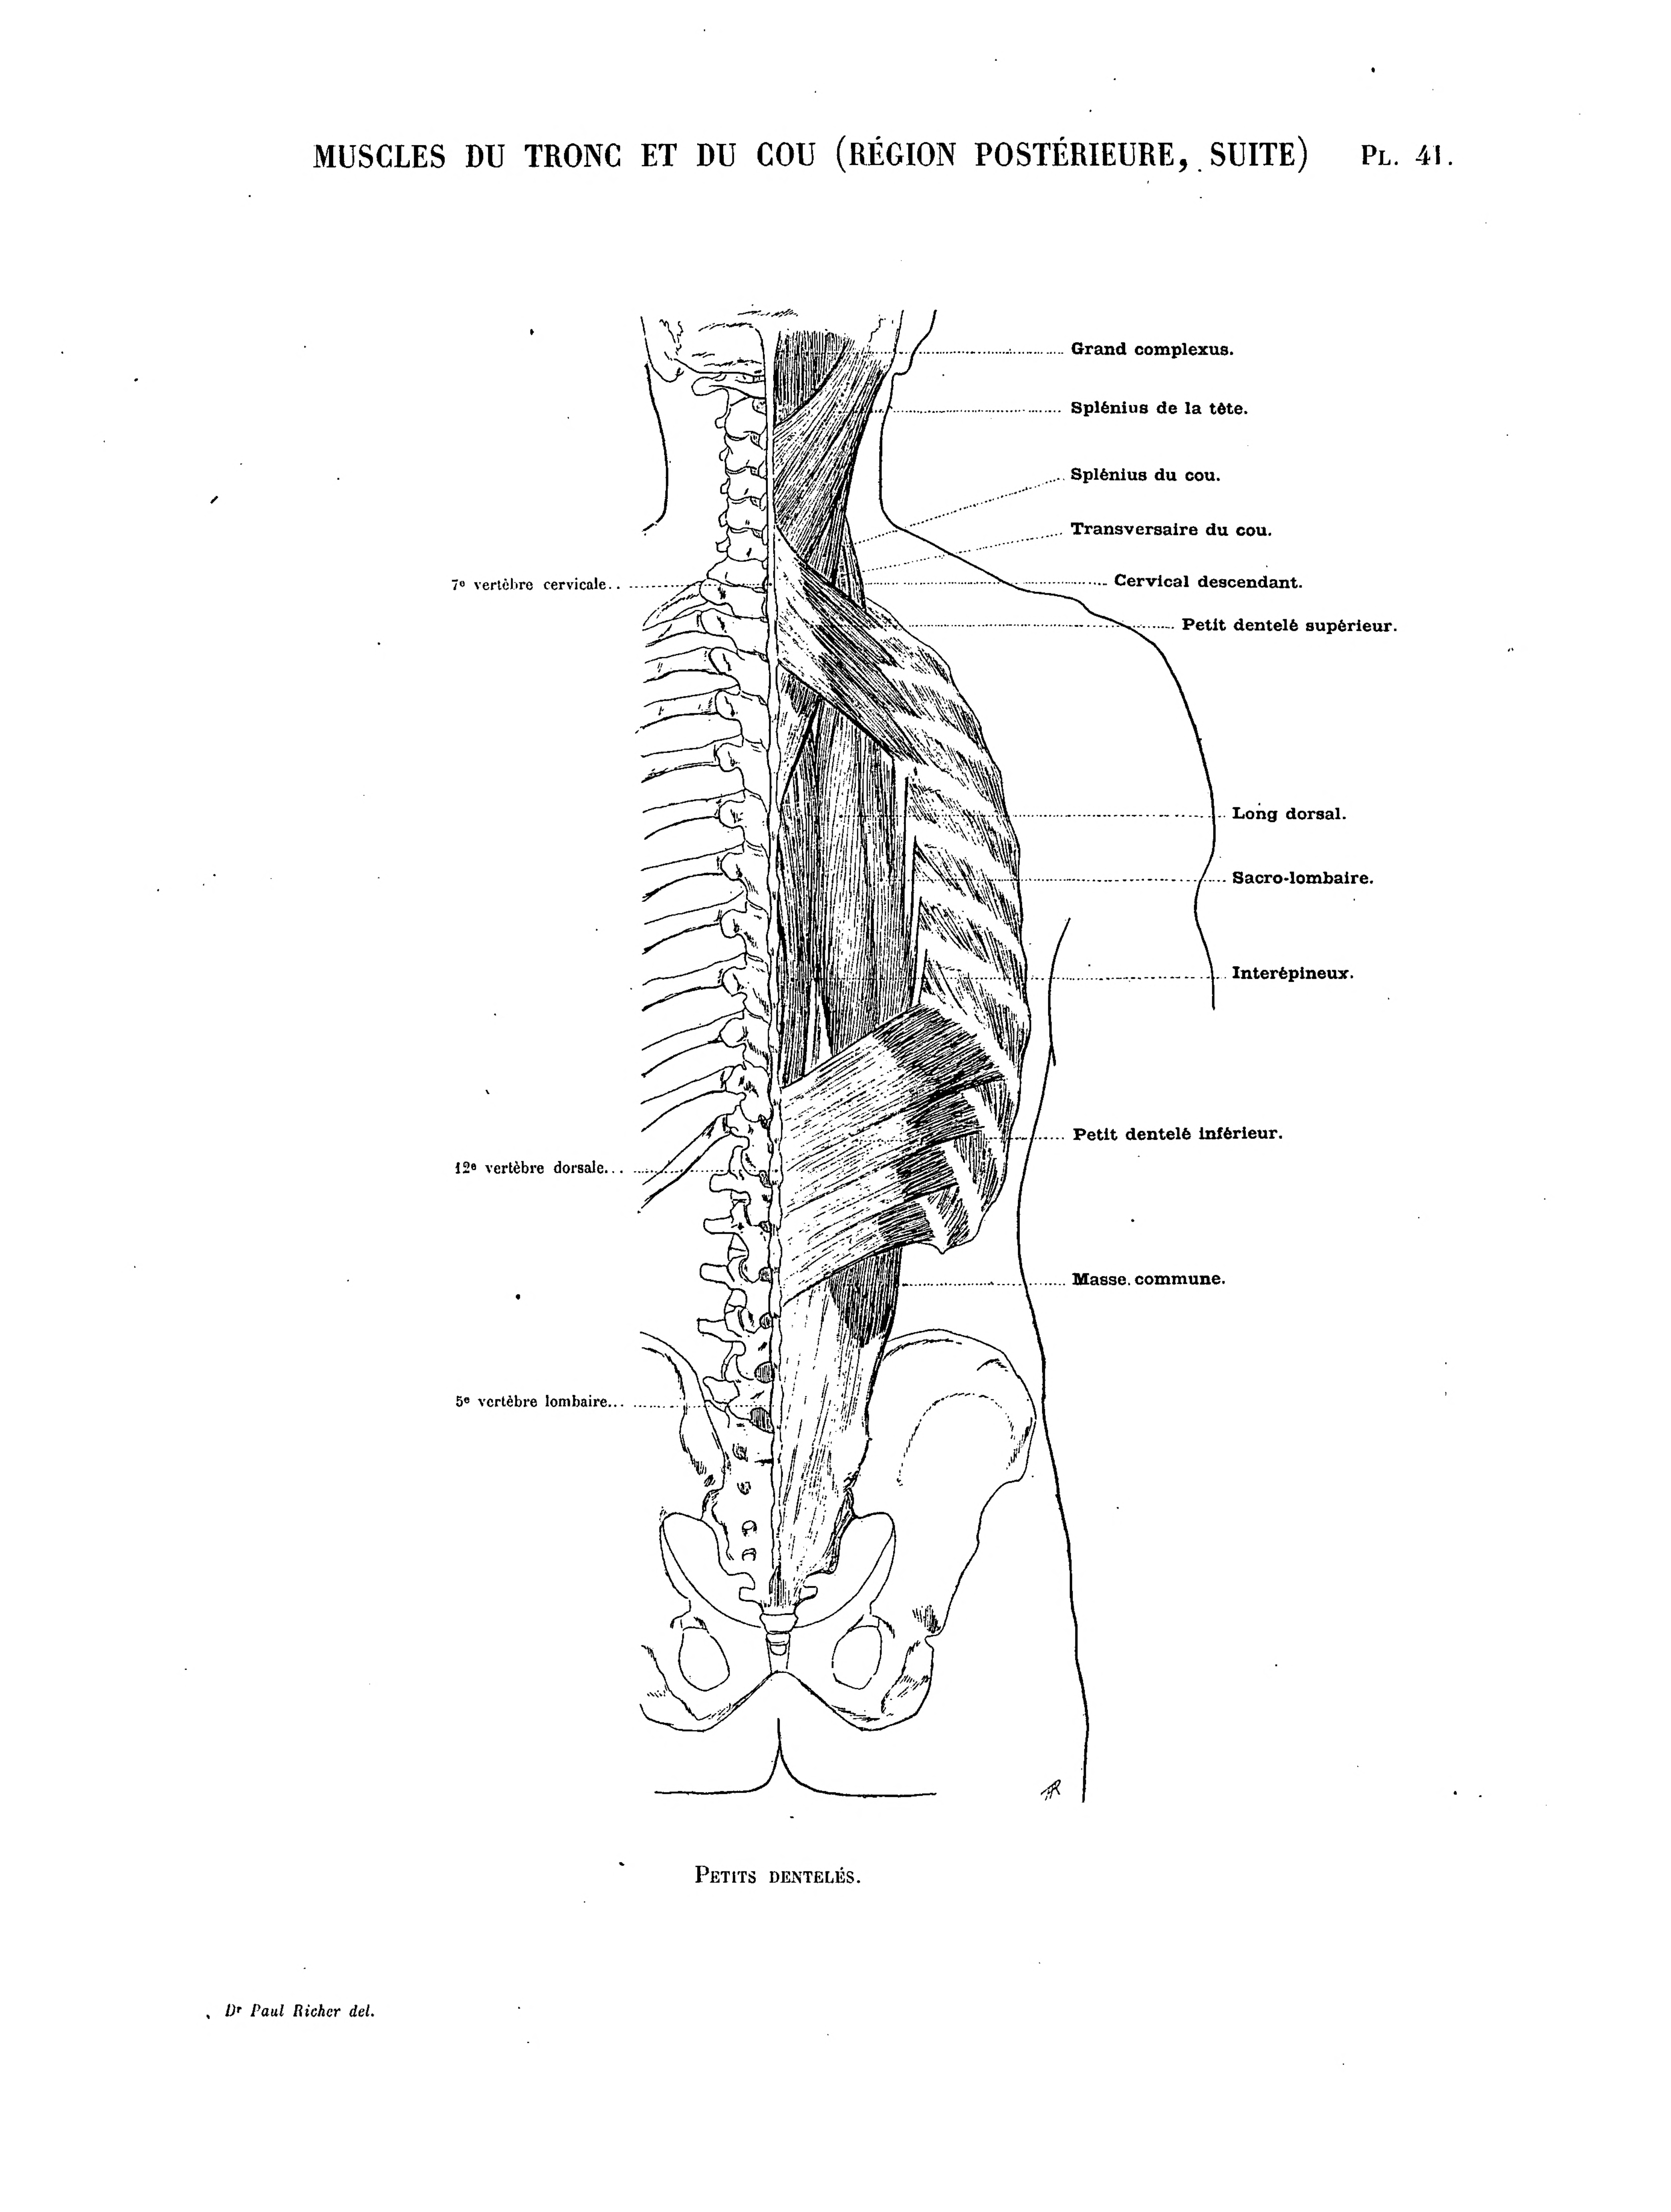 File:Richer - Anatomie artistique, 2 p. 48.png - Wikimedia Commons